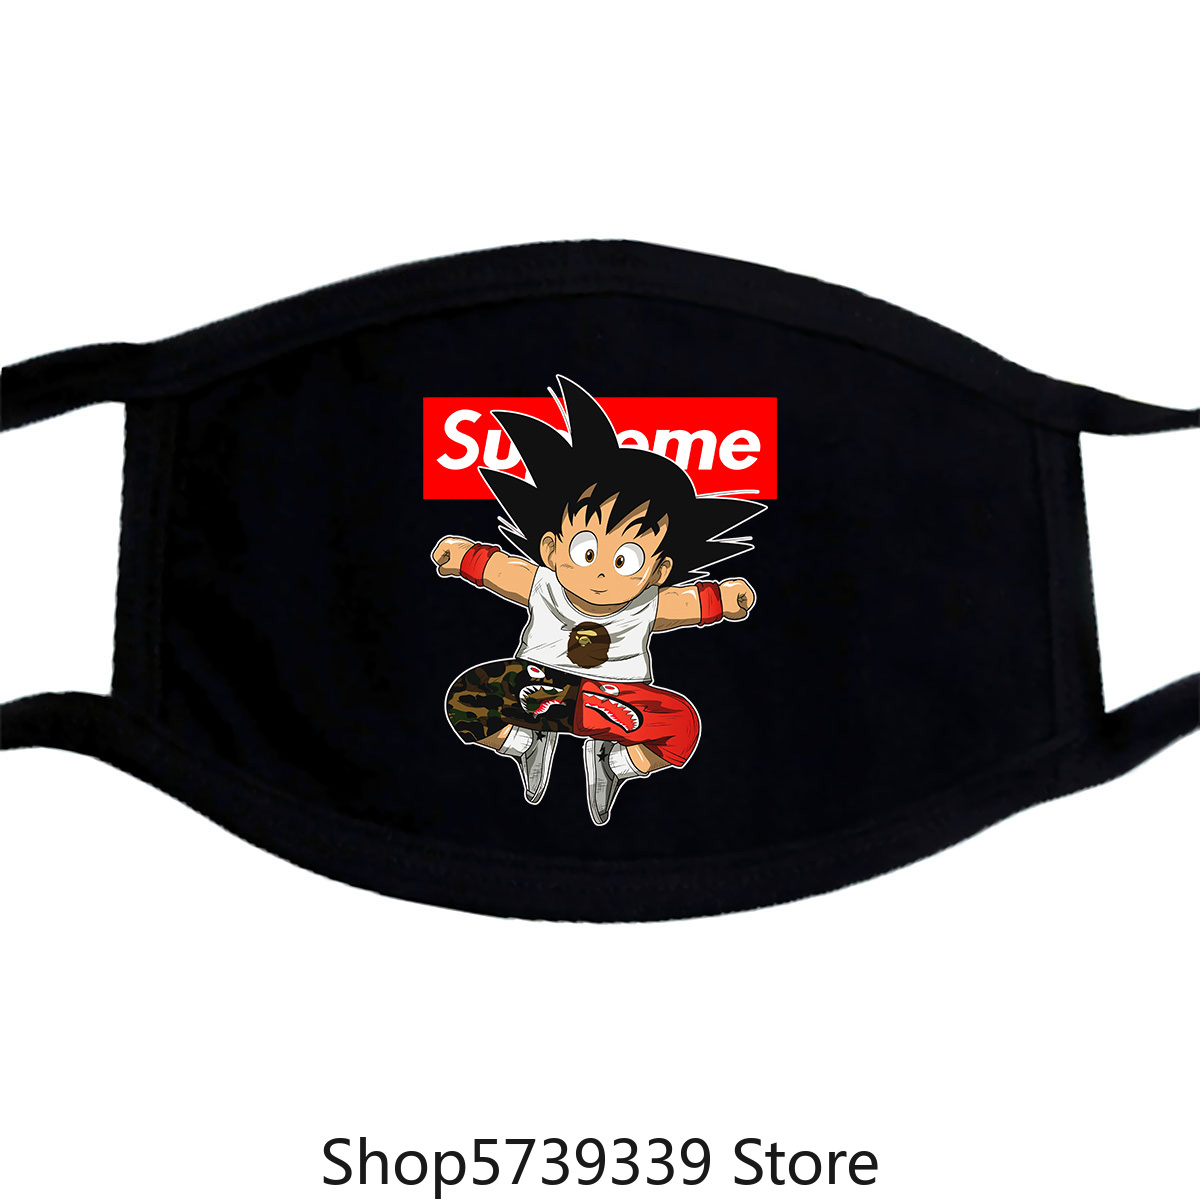 Super Dbz Hypebeast Baby Goku Youth Mask Size Unisex Tee Adults Kids Xs-3Xl Washable Reusable Mask With